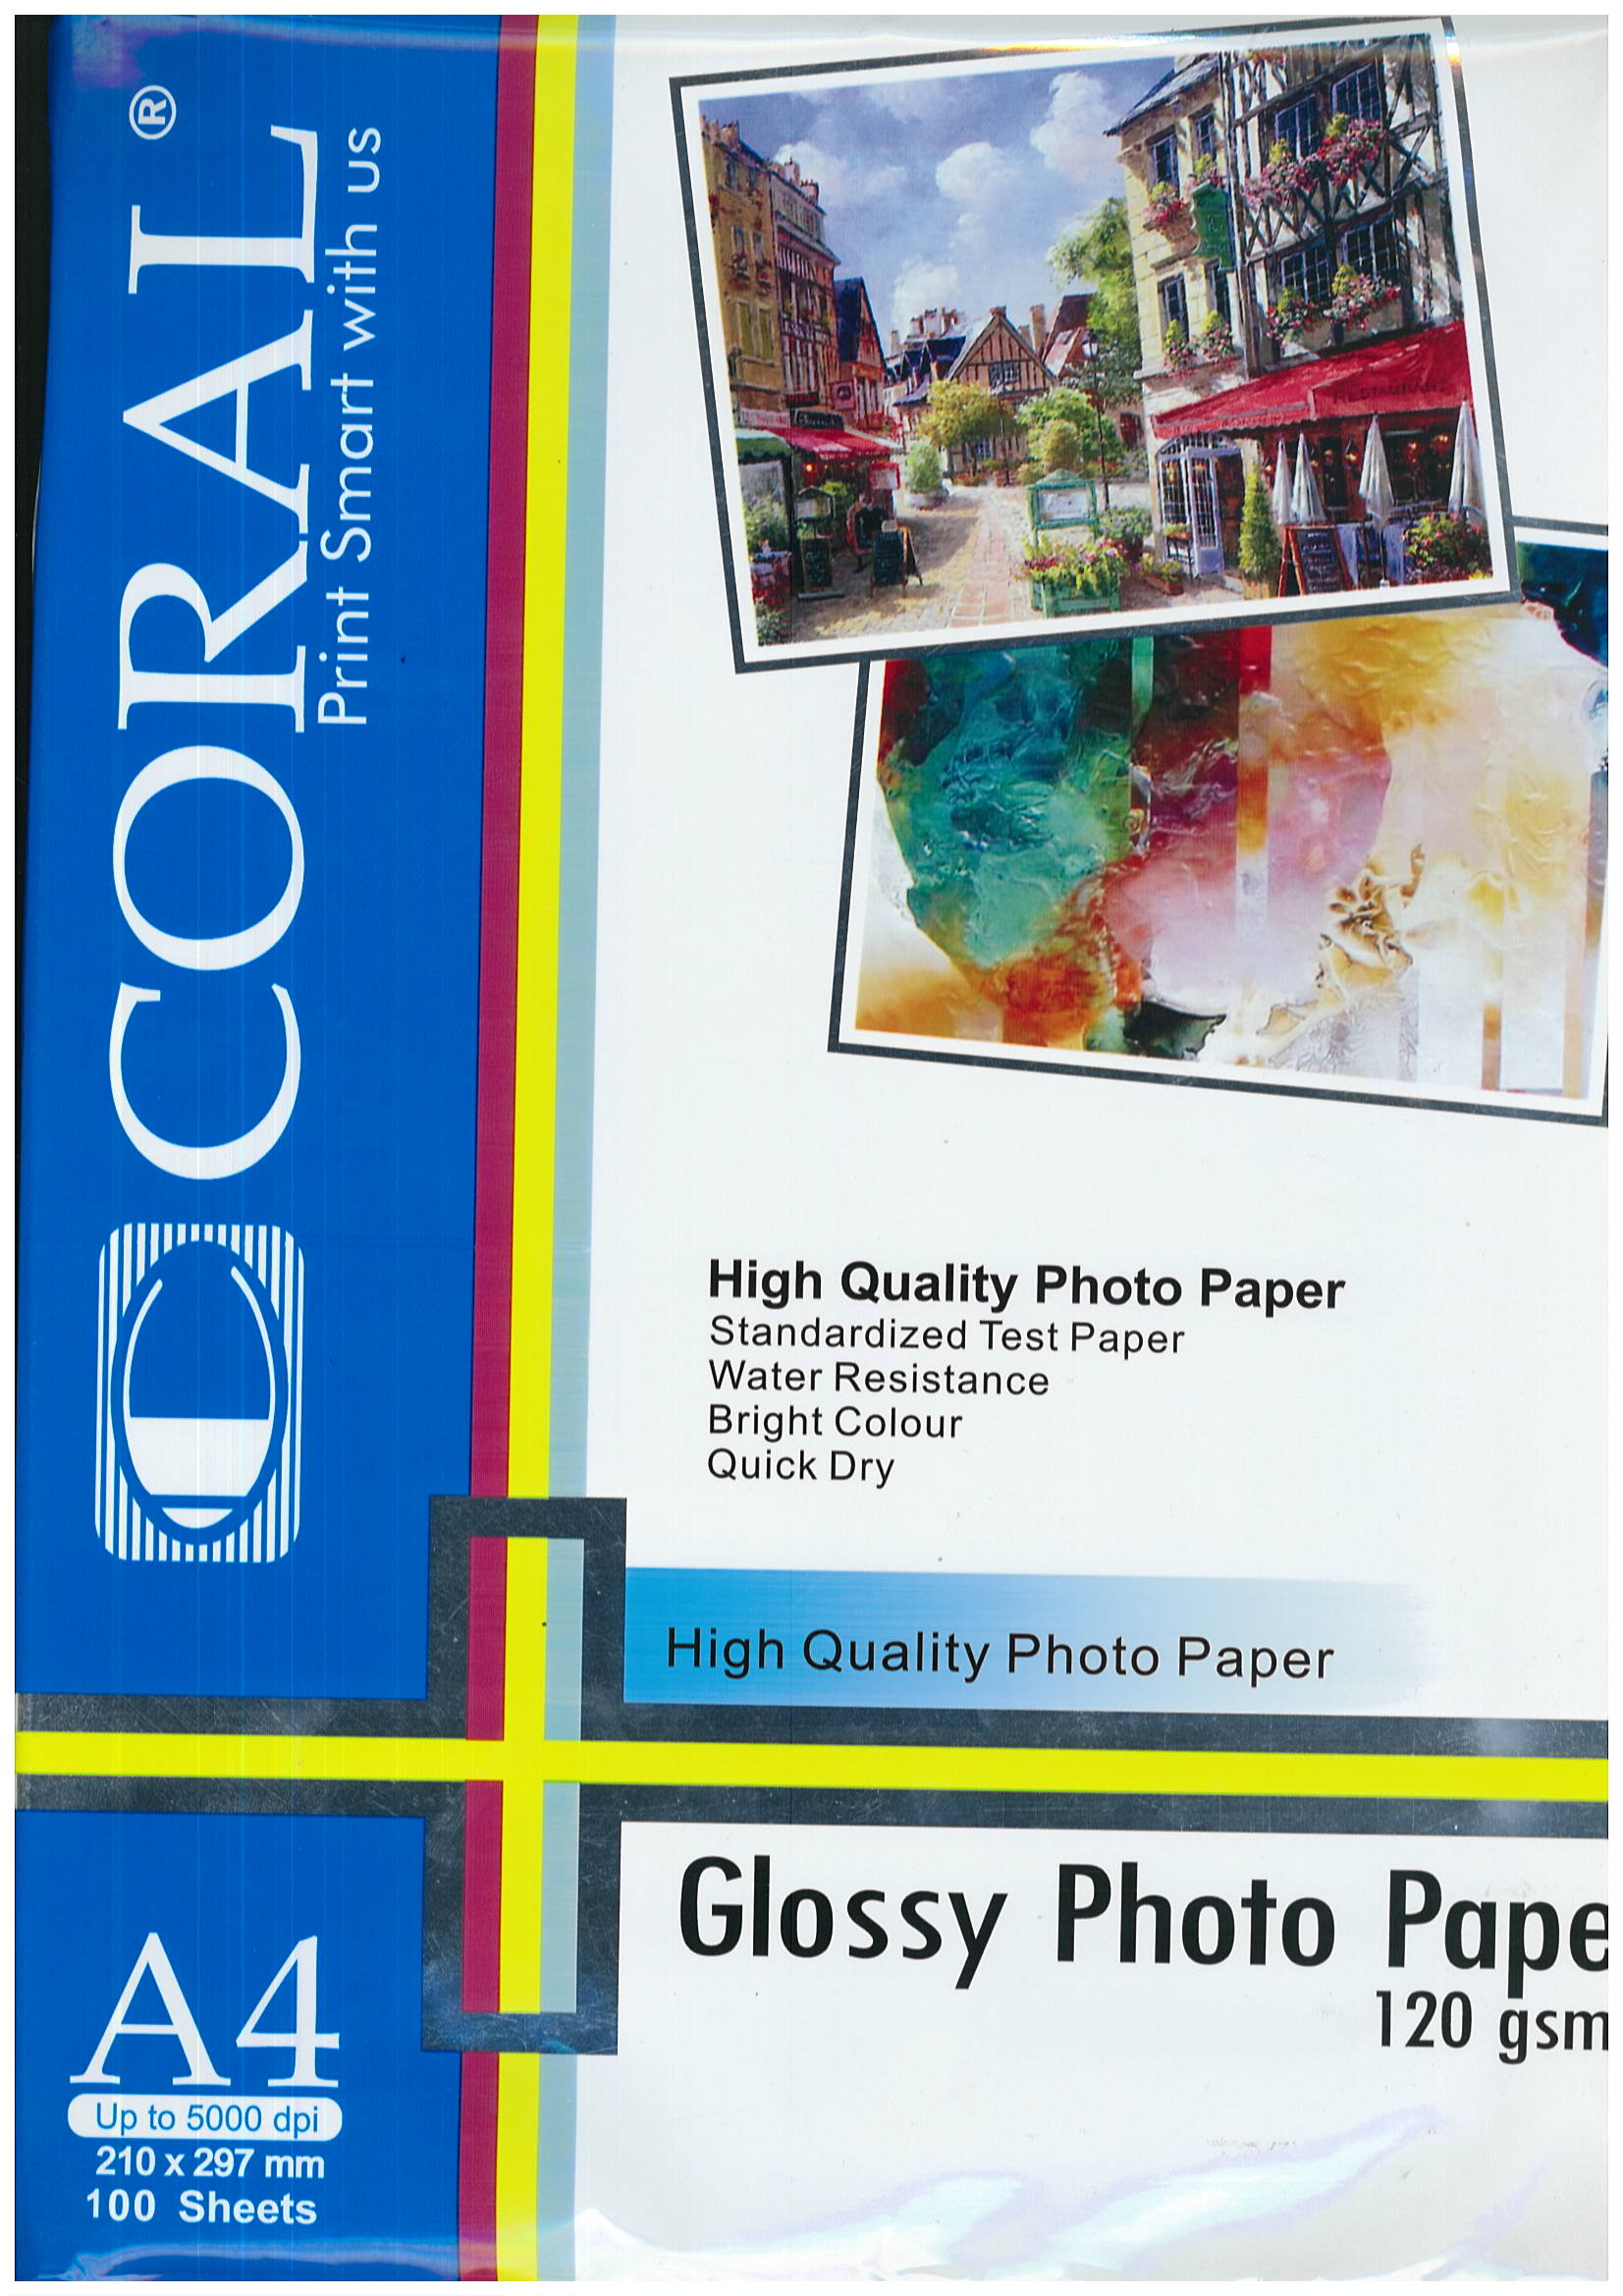 GLOSSY PHOTO PAPER A4 120GSM CORAL